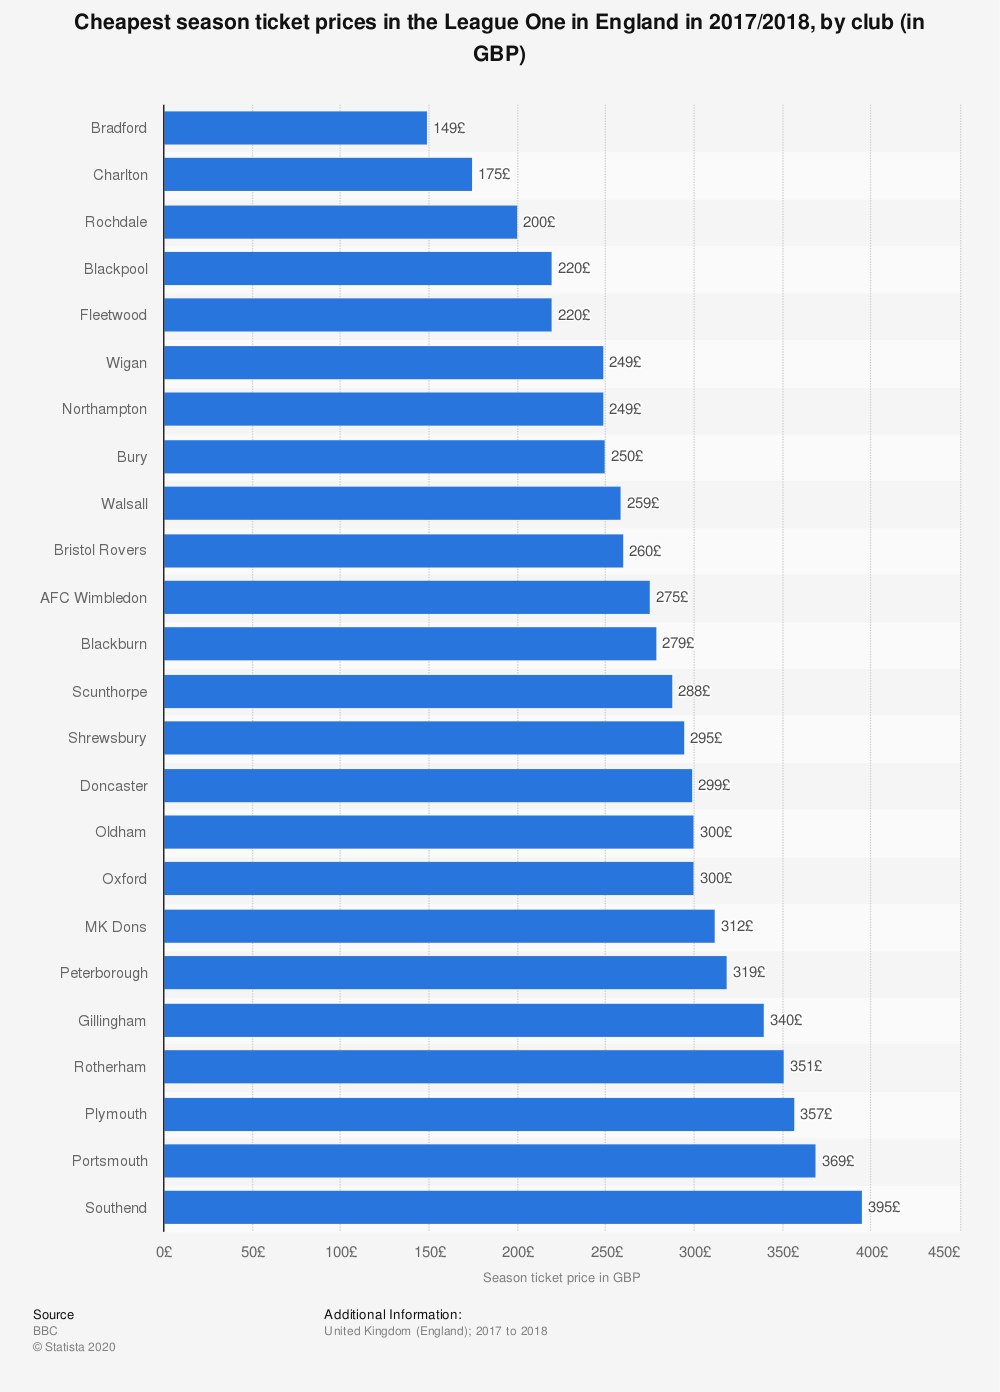 Statistic: Cheapest season ticket prices in the League One in England in 2017/2018, by club (in GBP) | Statista